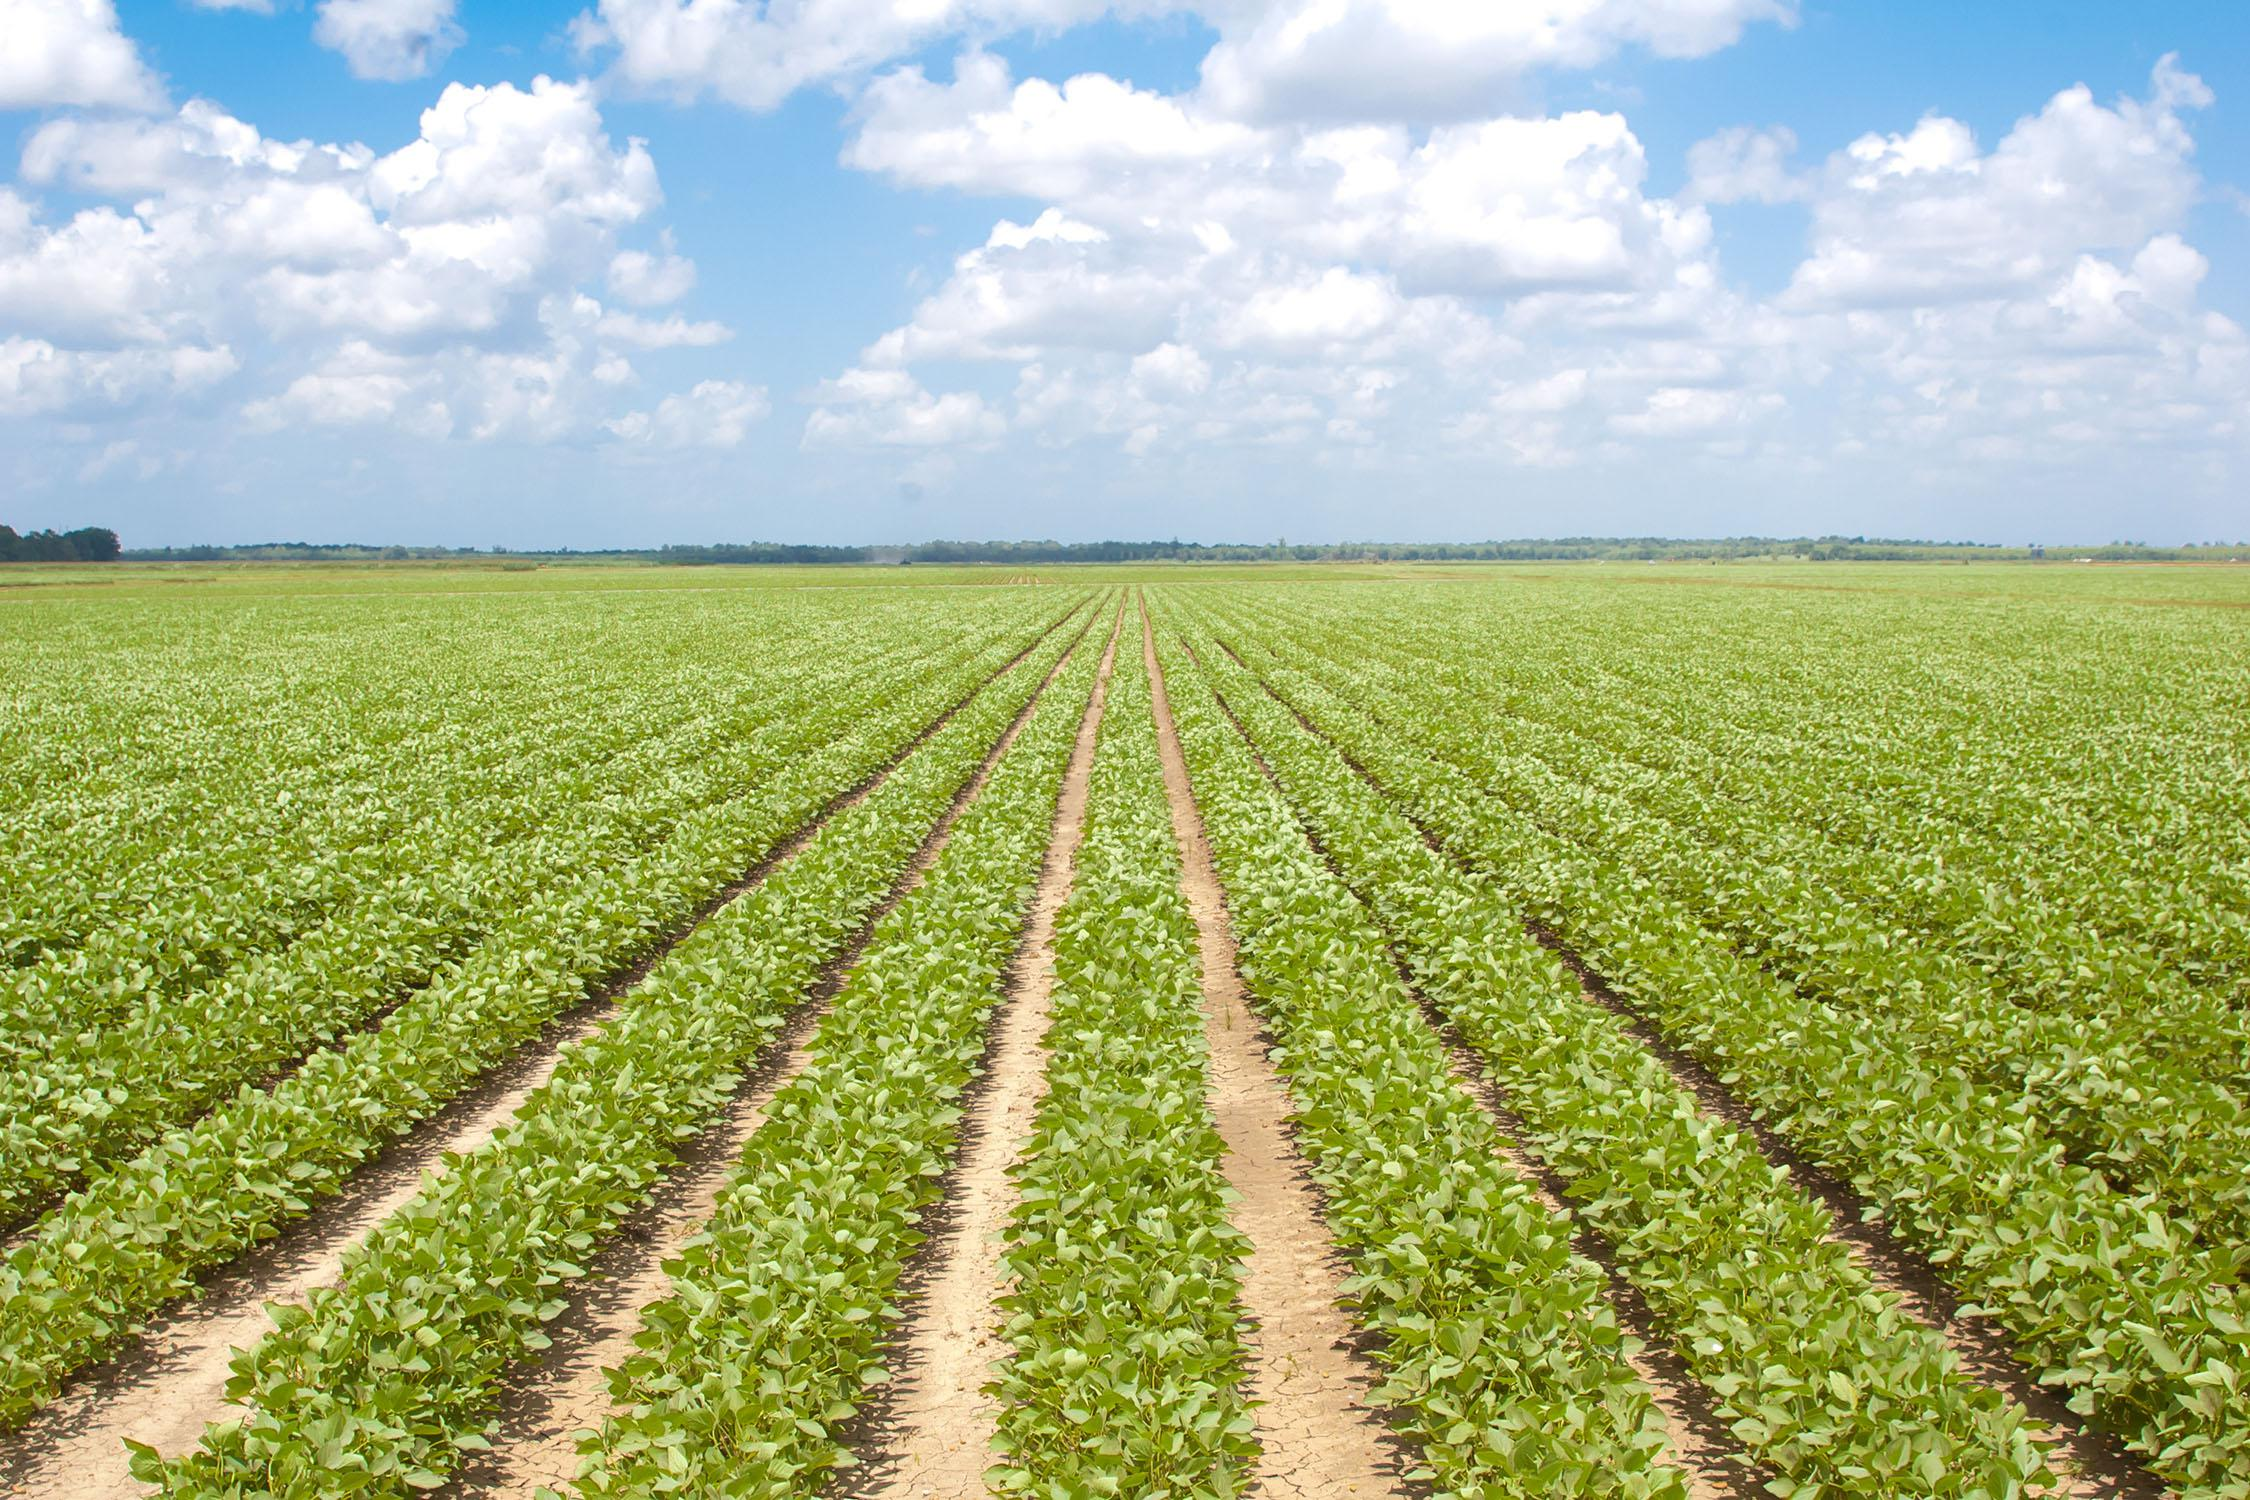 Mississippi State University scientists simulated various on-farm soybean production scenarios to analyzed risk-management programs in the new farm bill. Their results should help soybean producers make informed decisions for the next crop. (Photo by MSU MAFES/David Ammon)